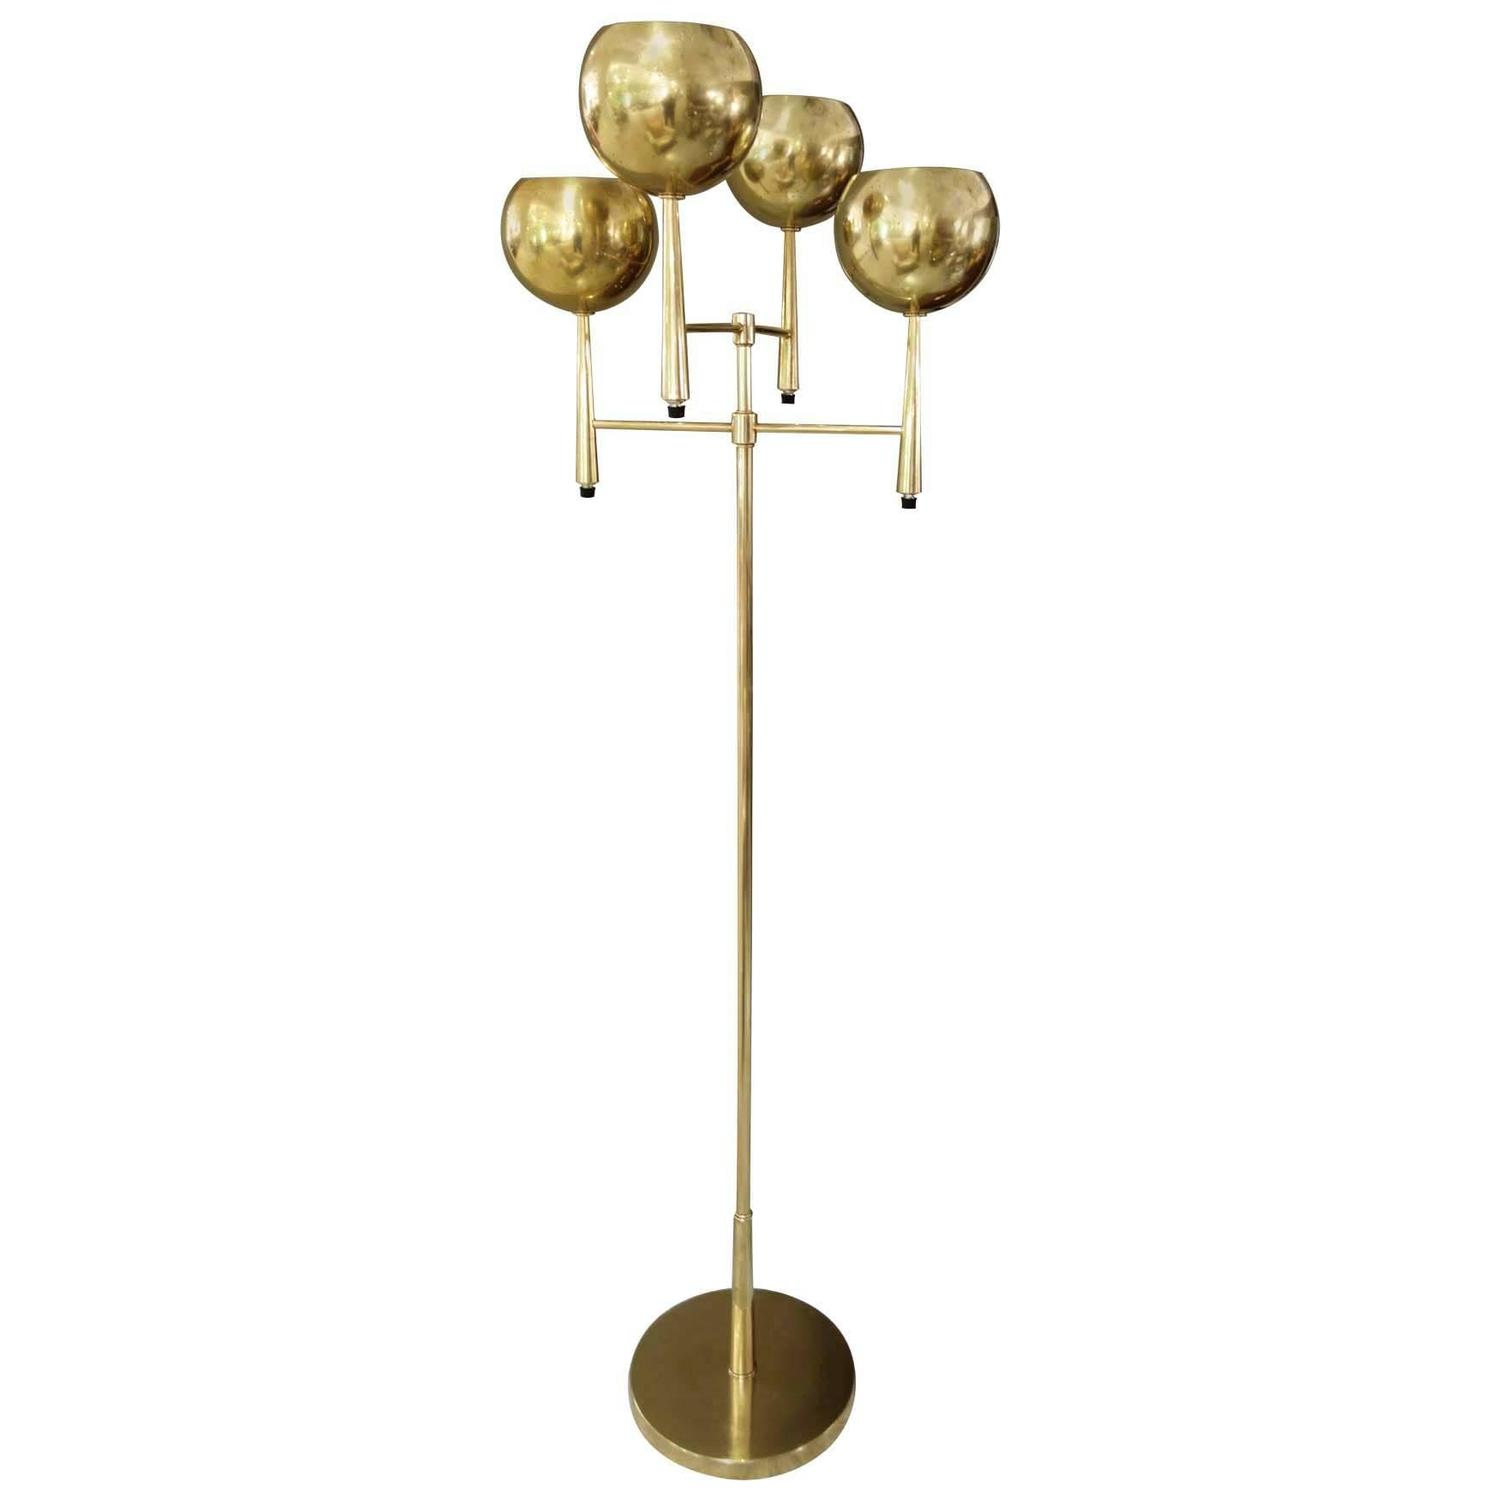 mid century modern four arm brass floor lamp by stiffel at. Black Bedroom Furniture Sets. Home Design Ideas